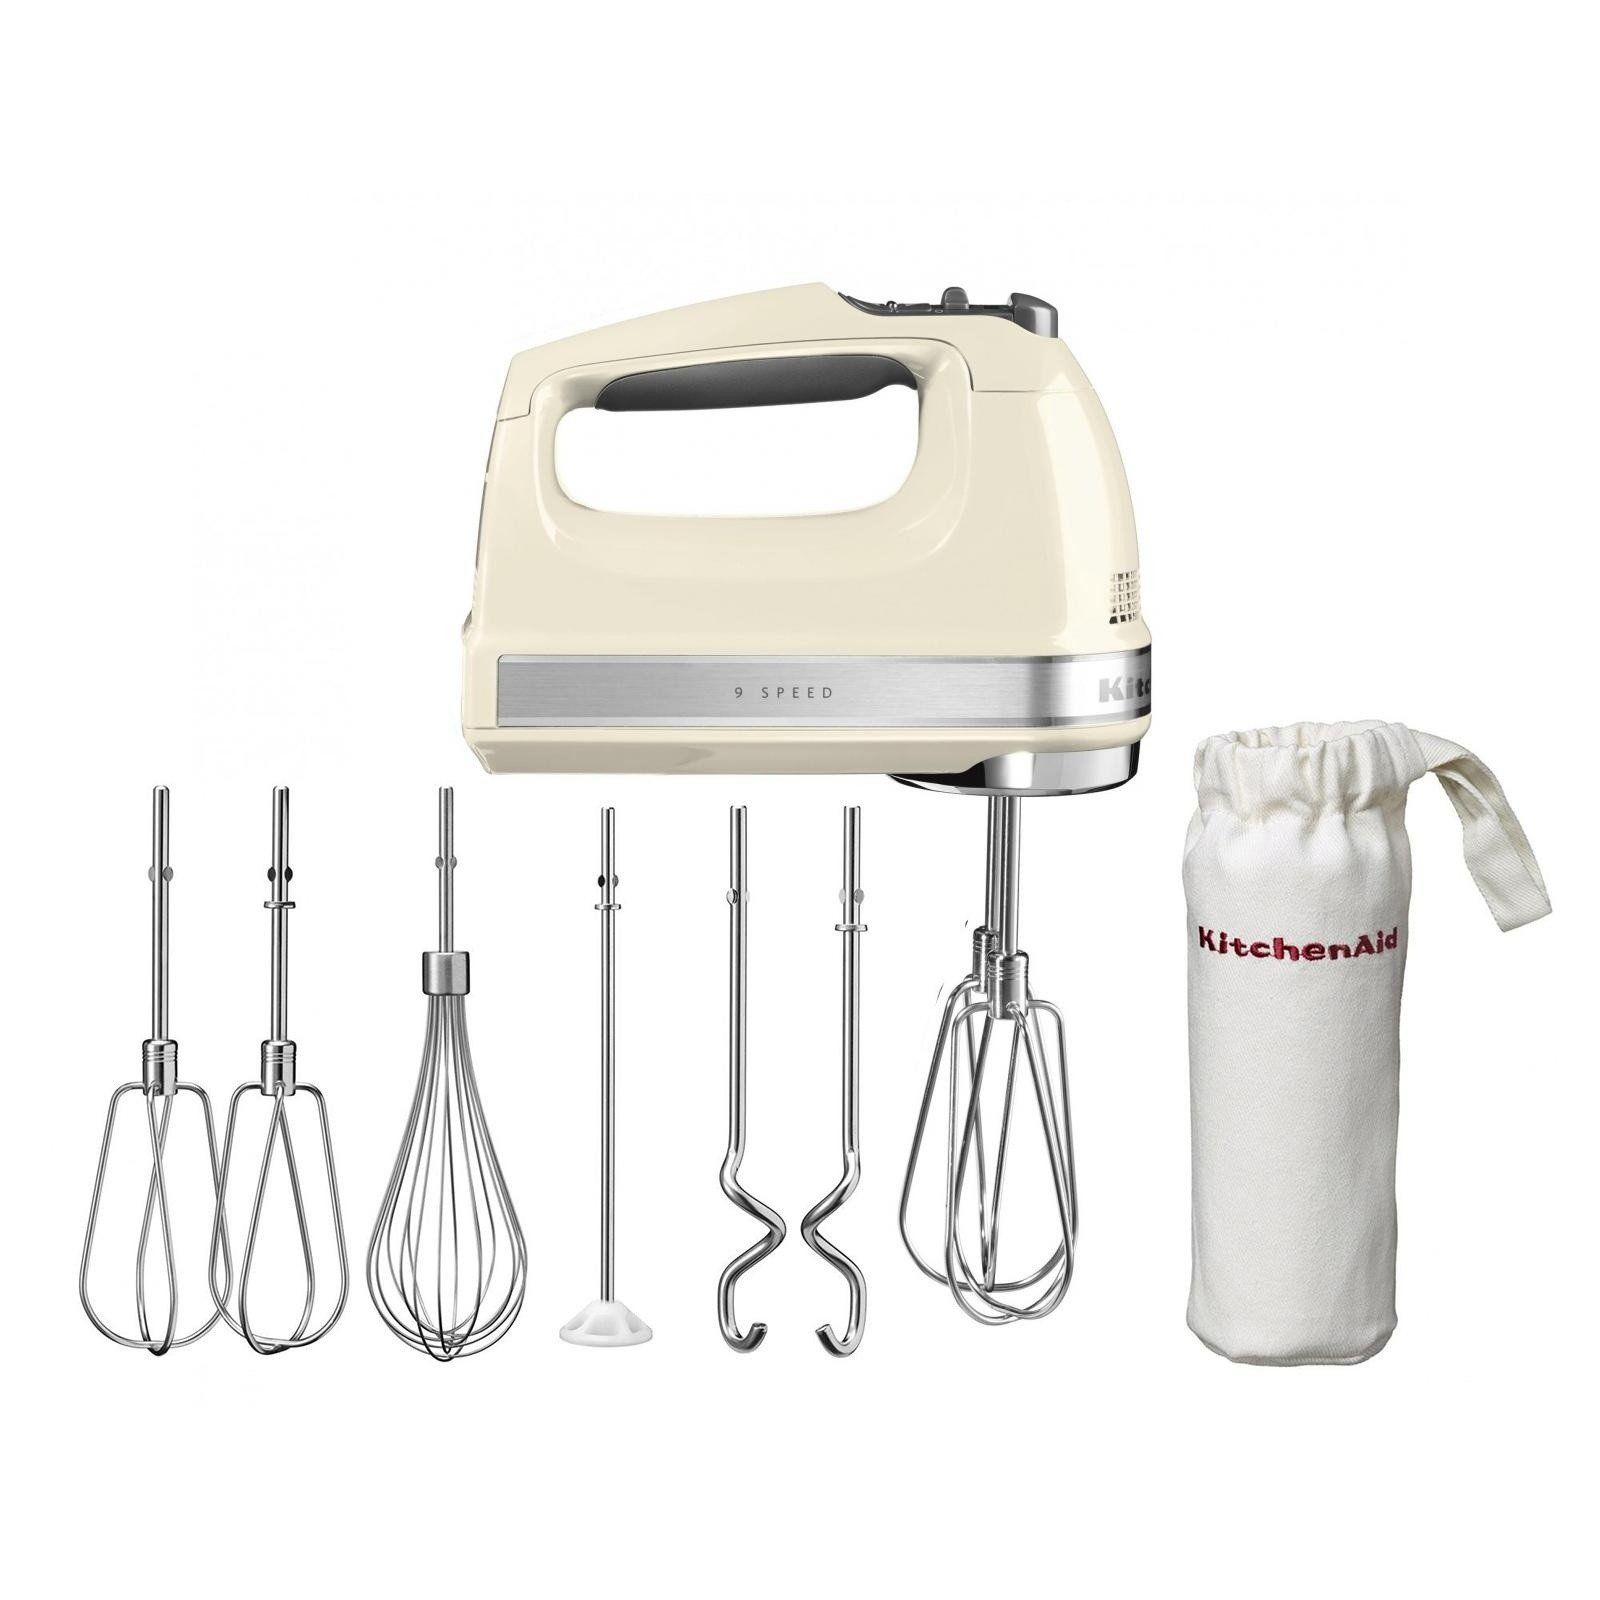 kitchenaid kitchenaid 5khm9212 hand mixer - Kitchen Aid Hand Mixer